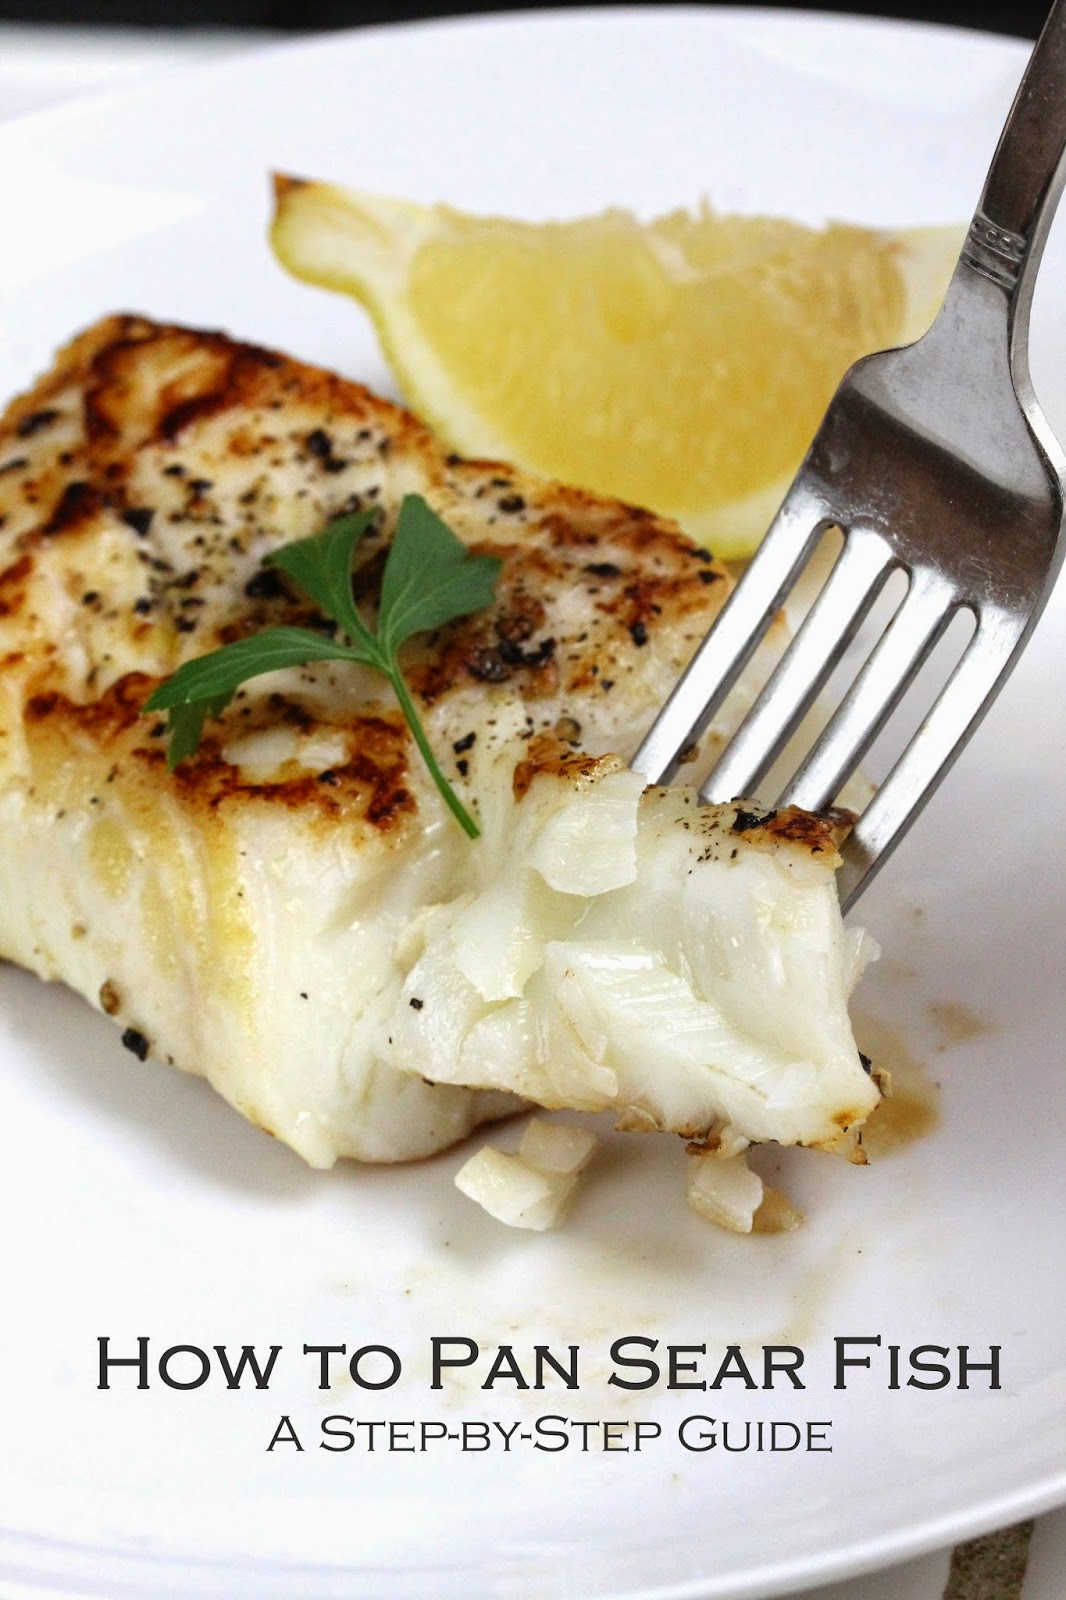 How to Pan Sear Fish, A Step-By-Step Guide - A fork lifts a bite of pan seared fish. Fish is garnished with a sprig of parsley and a lemon wedge.